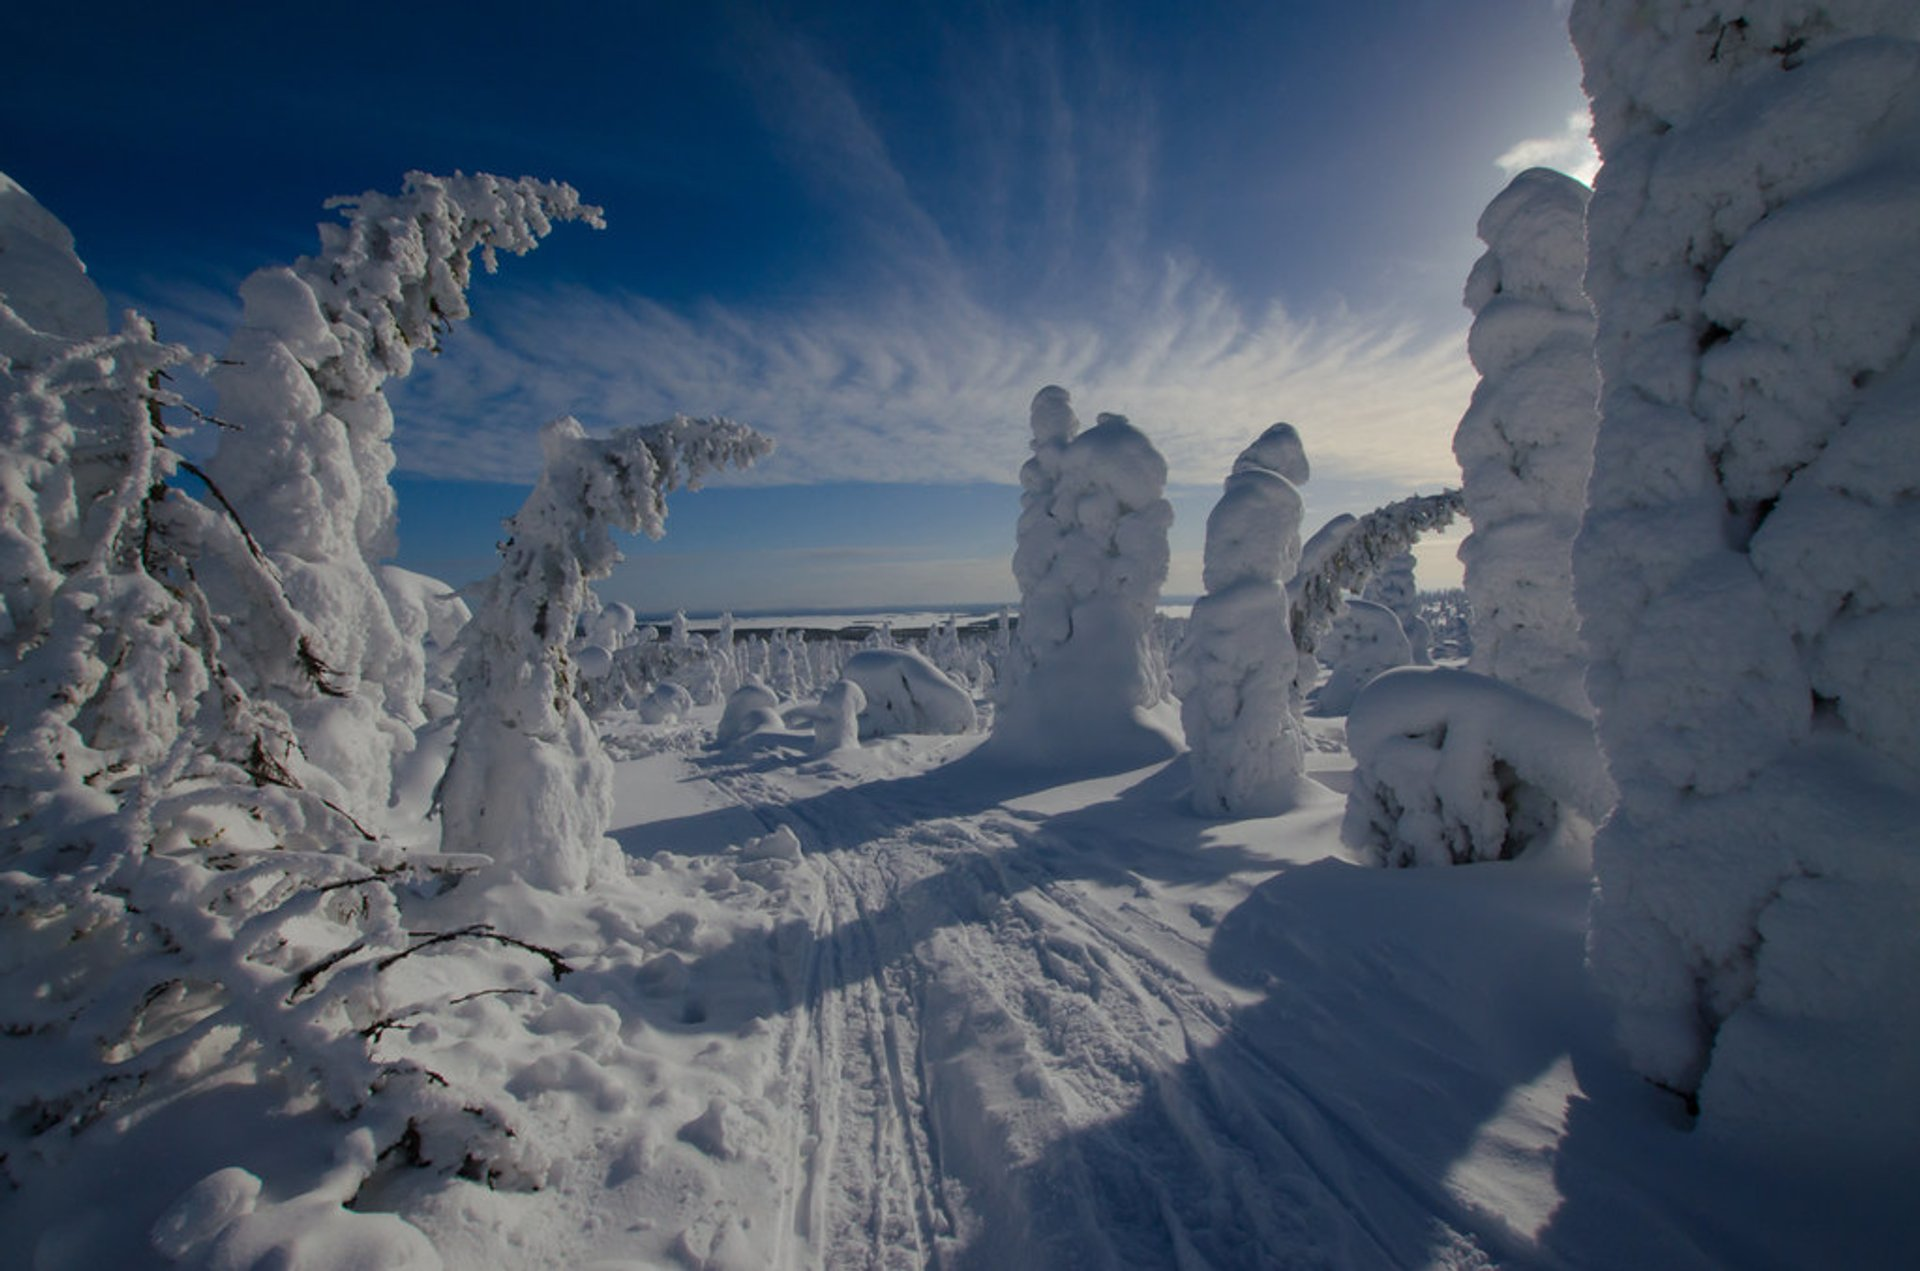 Tykky in Riisitunturi National Park in Finland - Best Season 2020